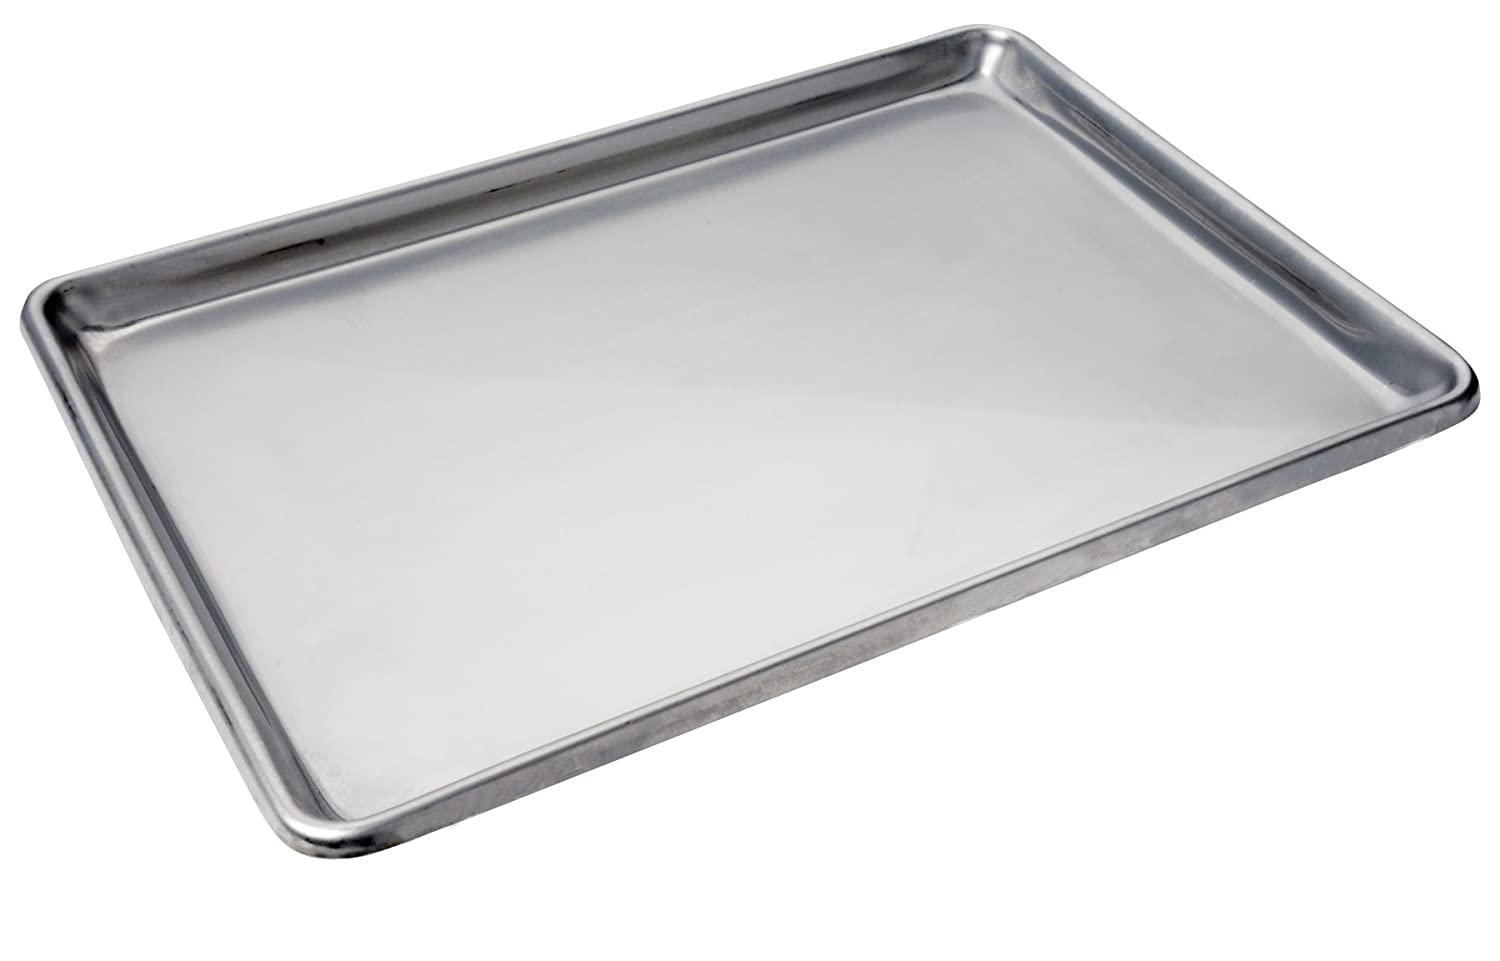 Focus Foodservice Commercial Bakeware Stainless Steel-Sheet Pan, Full Size